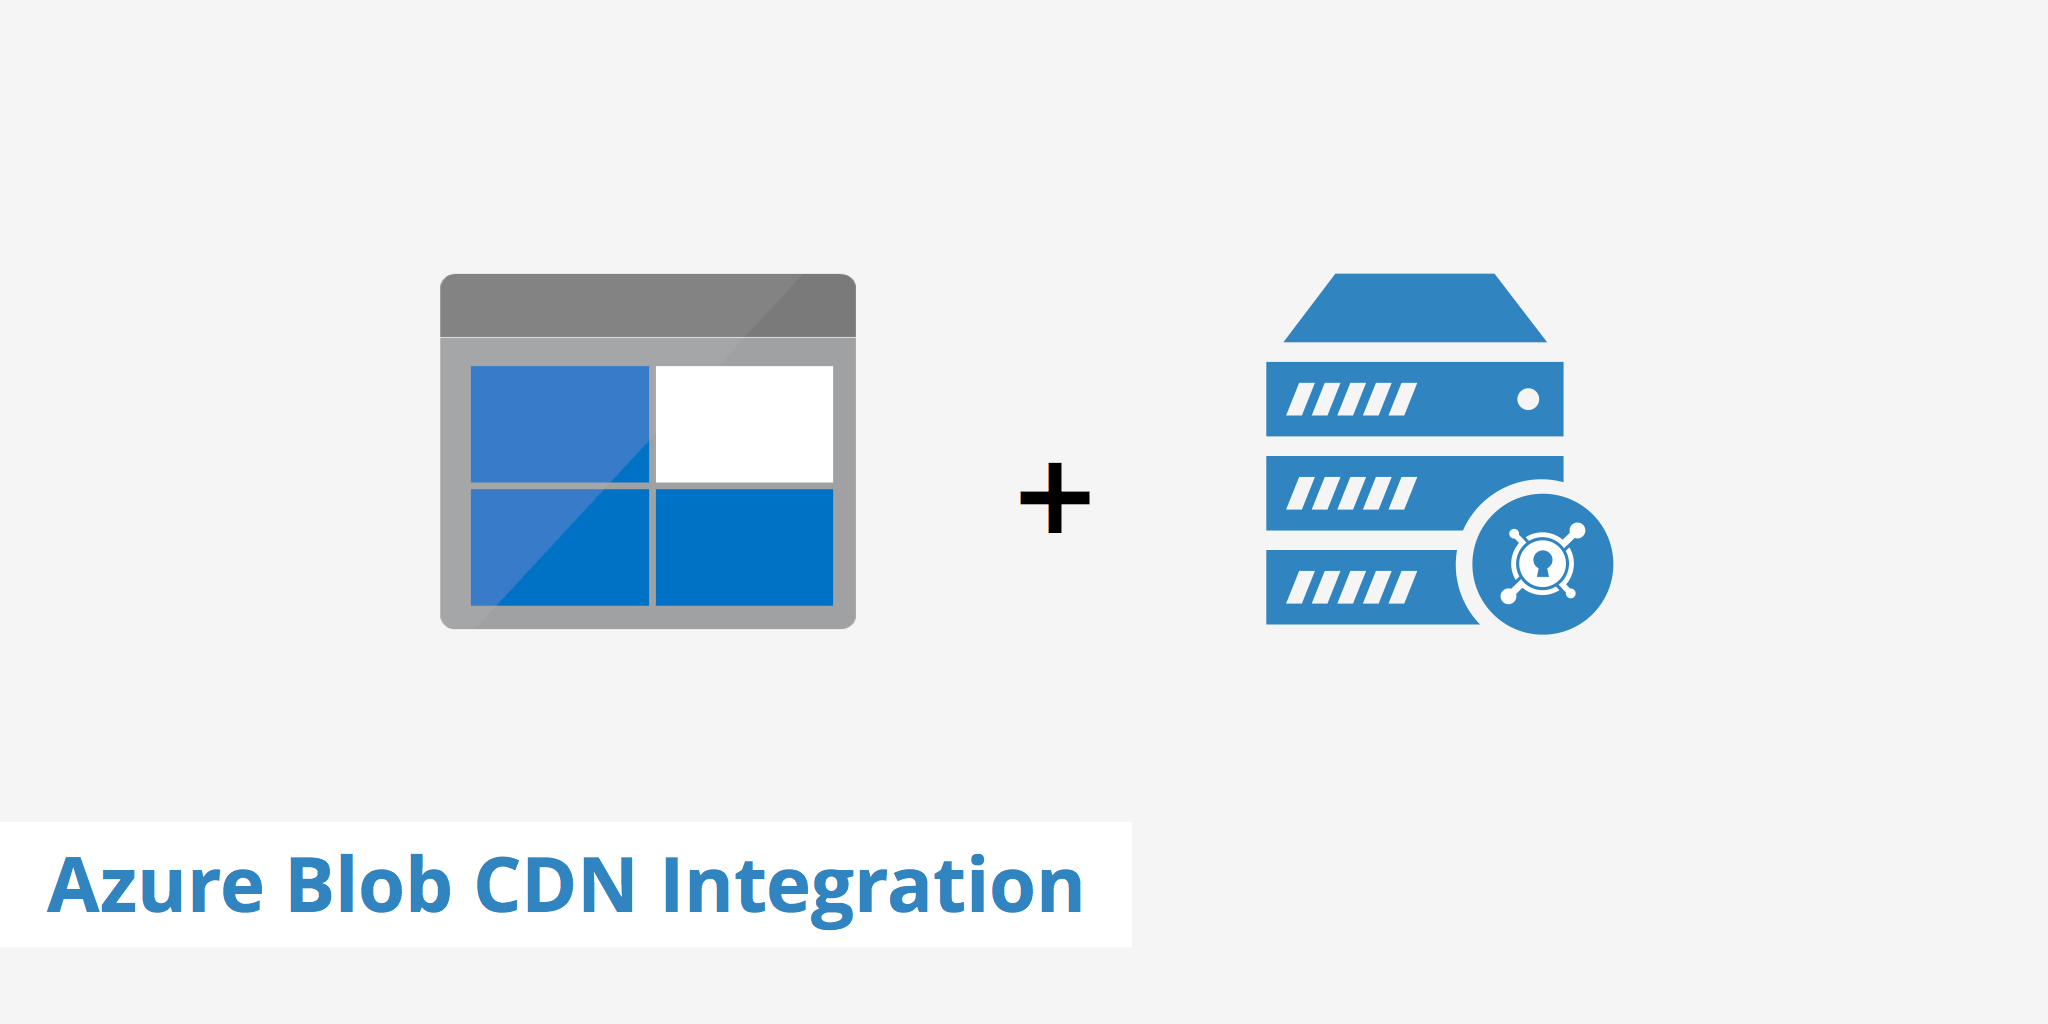 Azure Blob CDN Integration - KeyCDN Support